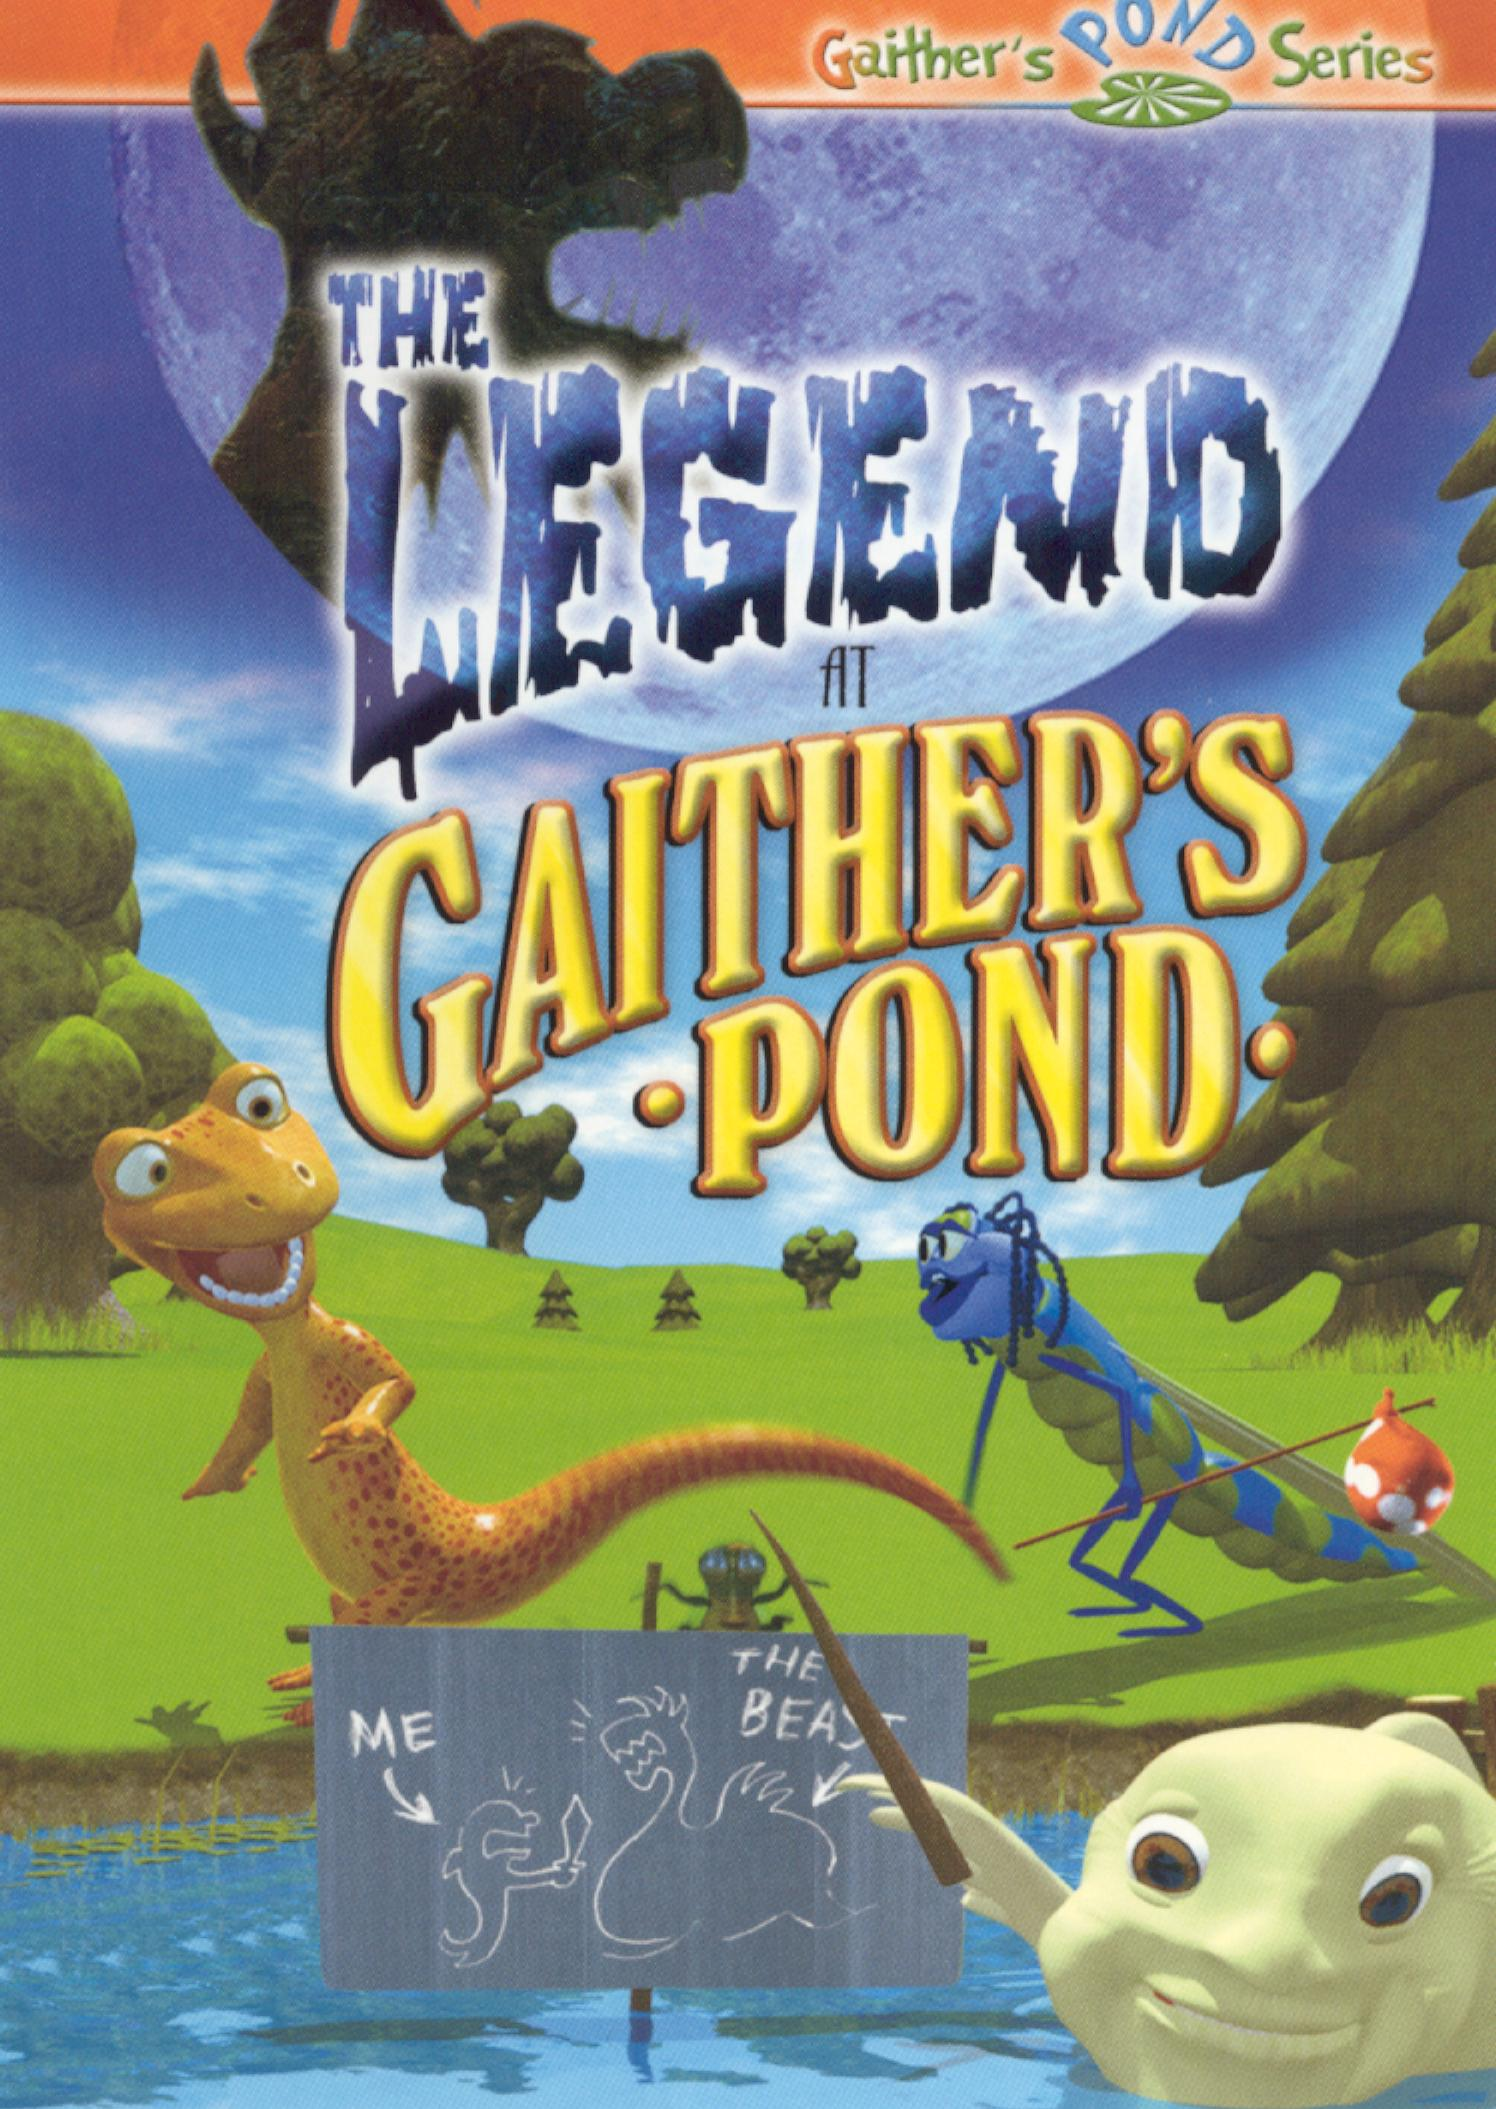 Gaither's Pond: The Legend at Gaither's Pond